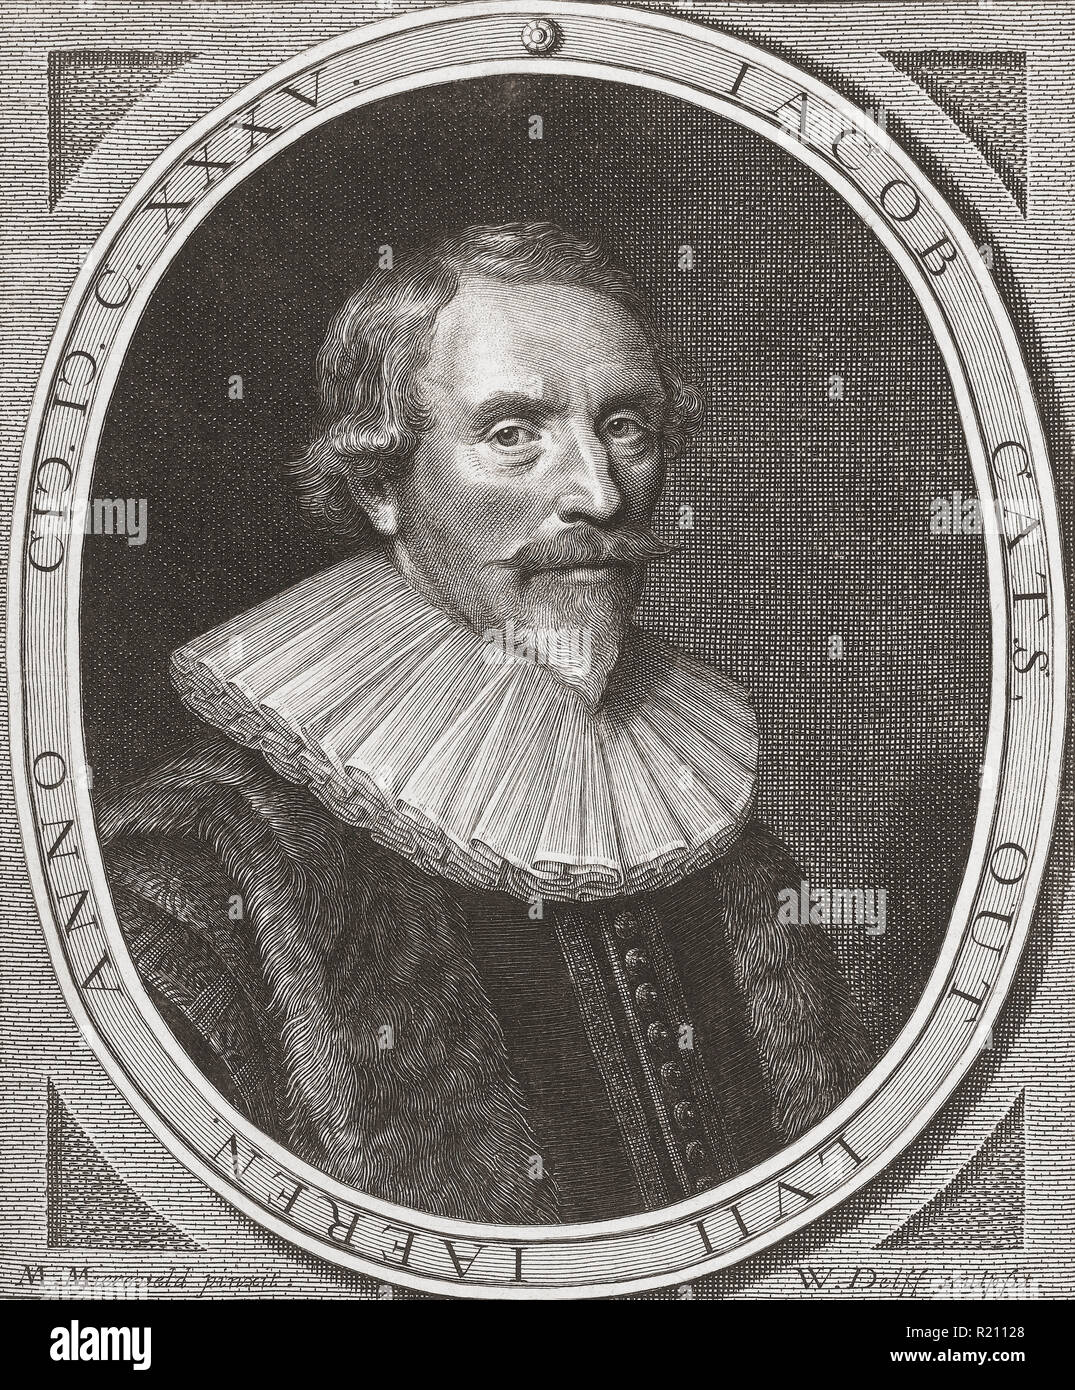 Jacob Cats, 1577 – 1660.  Dutch poet, humorist, jurist and politician.  He is famed as the author of emblem books. - Stock Image